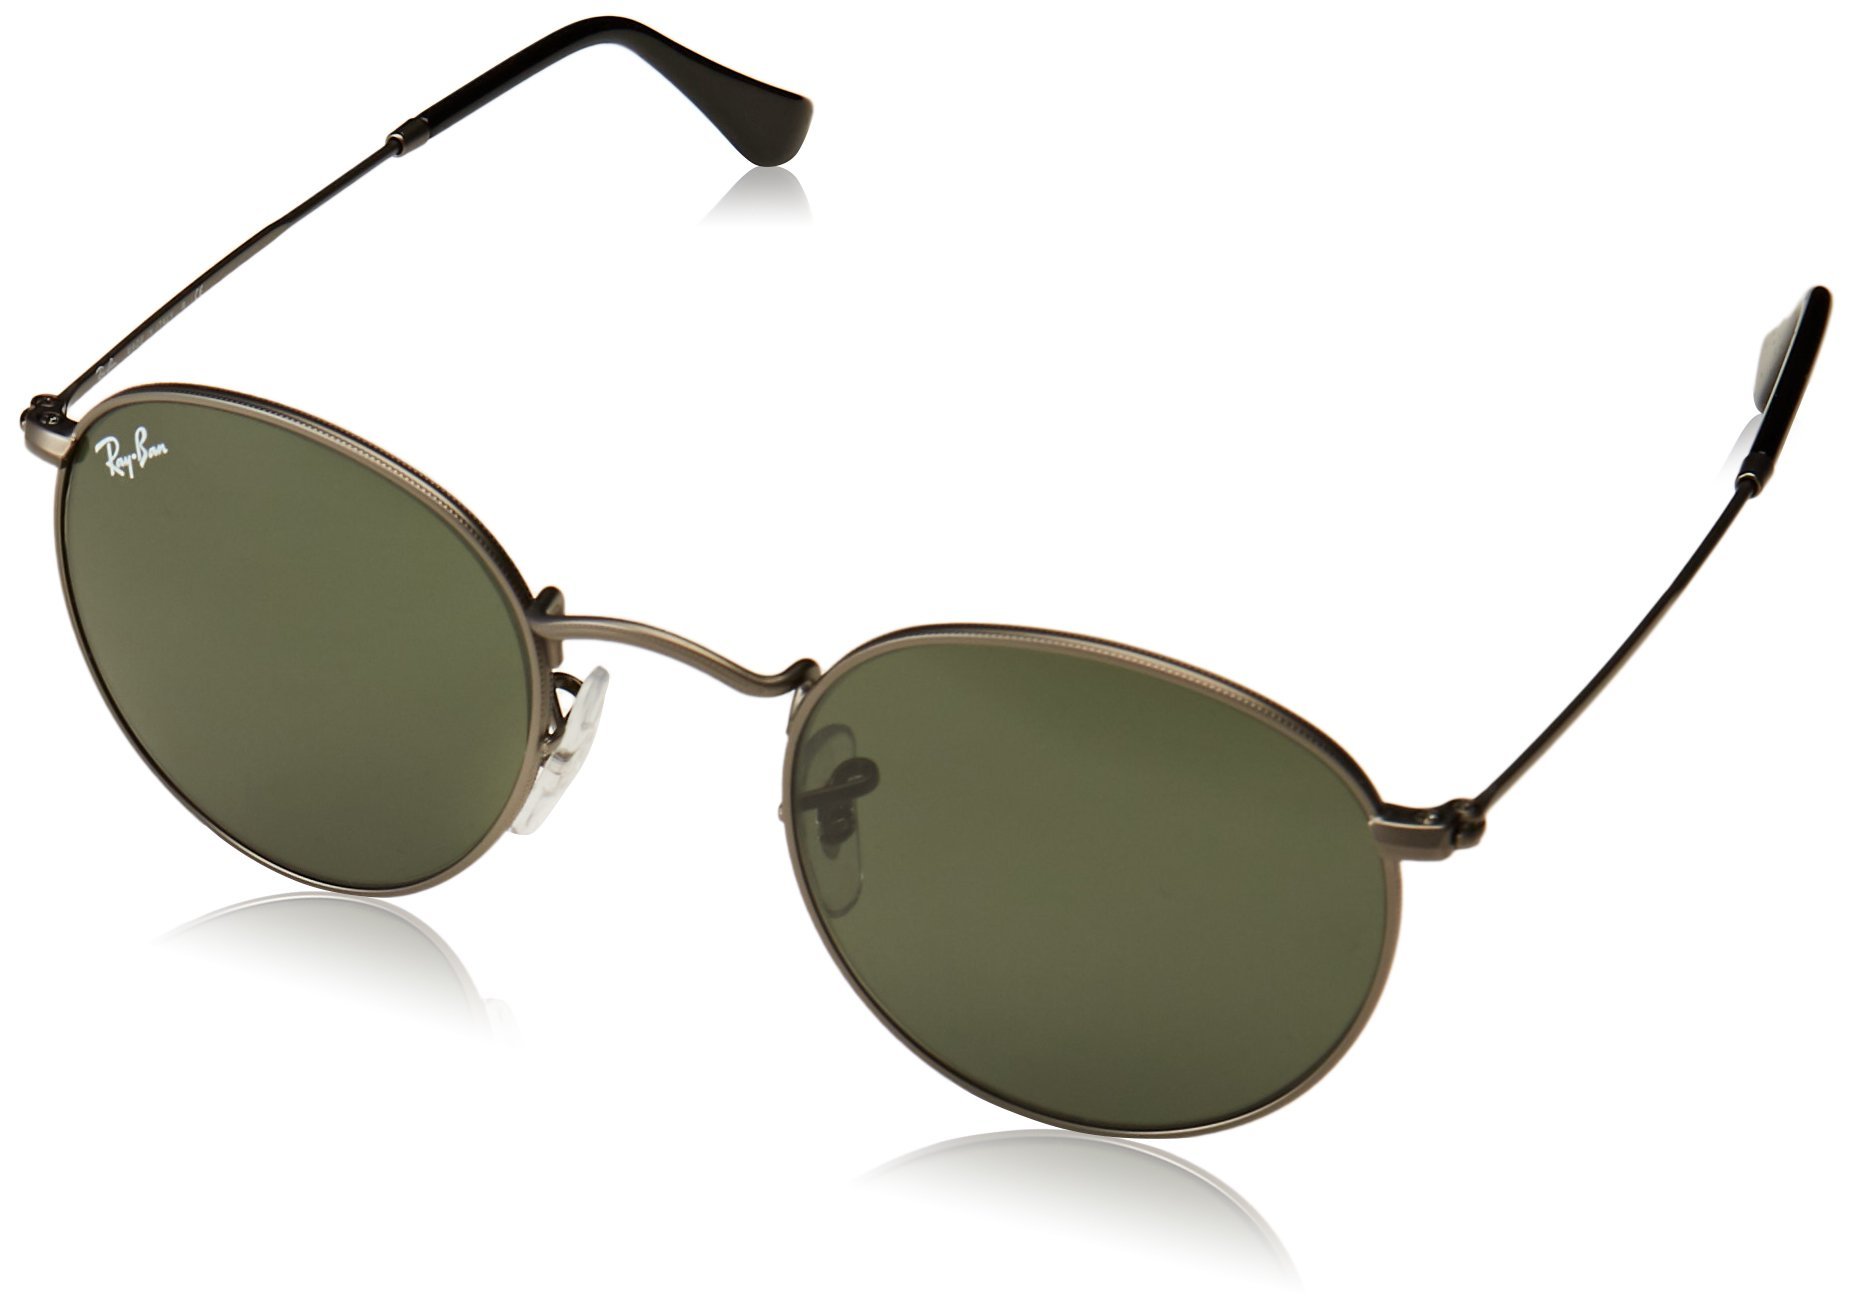 RAY-BAN RB3447 Round Metal Sunglasses, Matte Gunmetal/Green, 47 mm by Ray-Ban